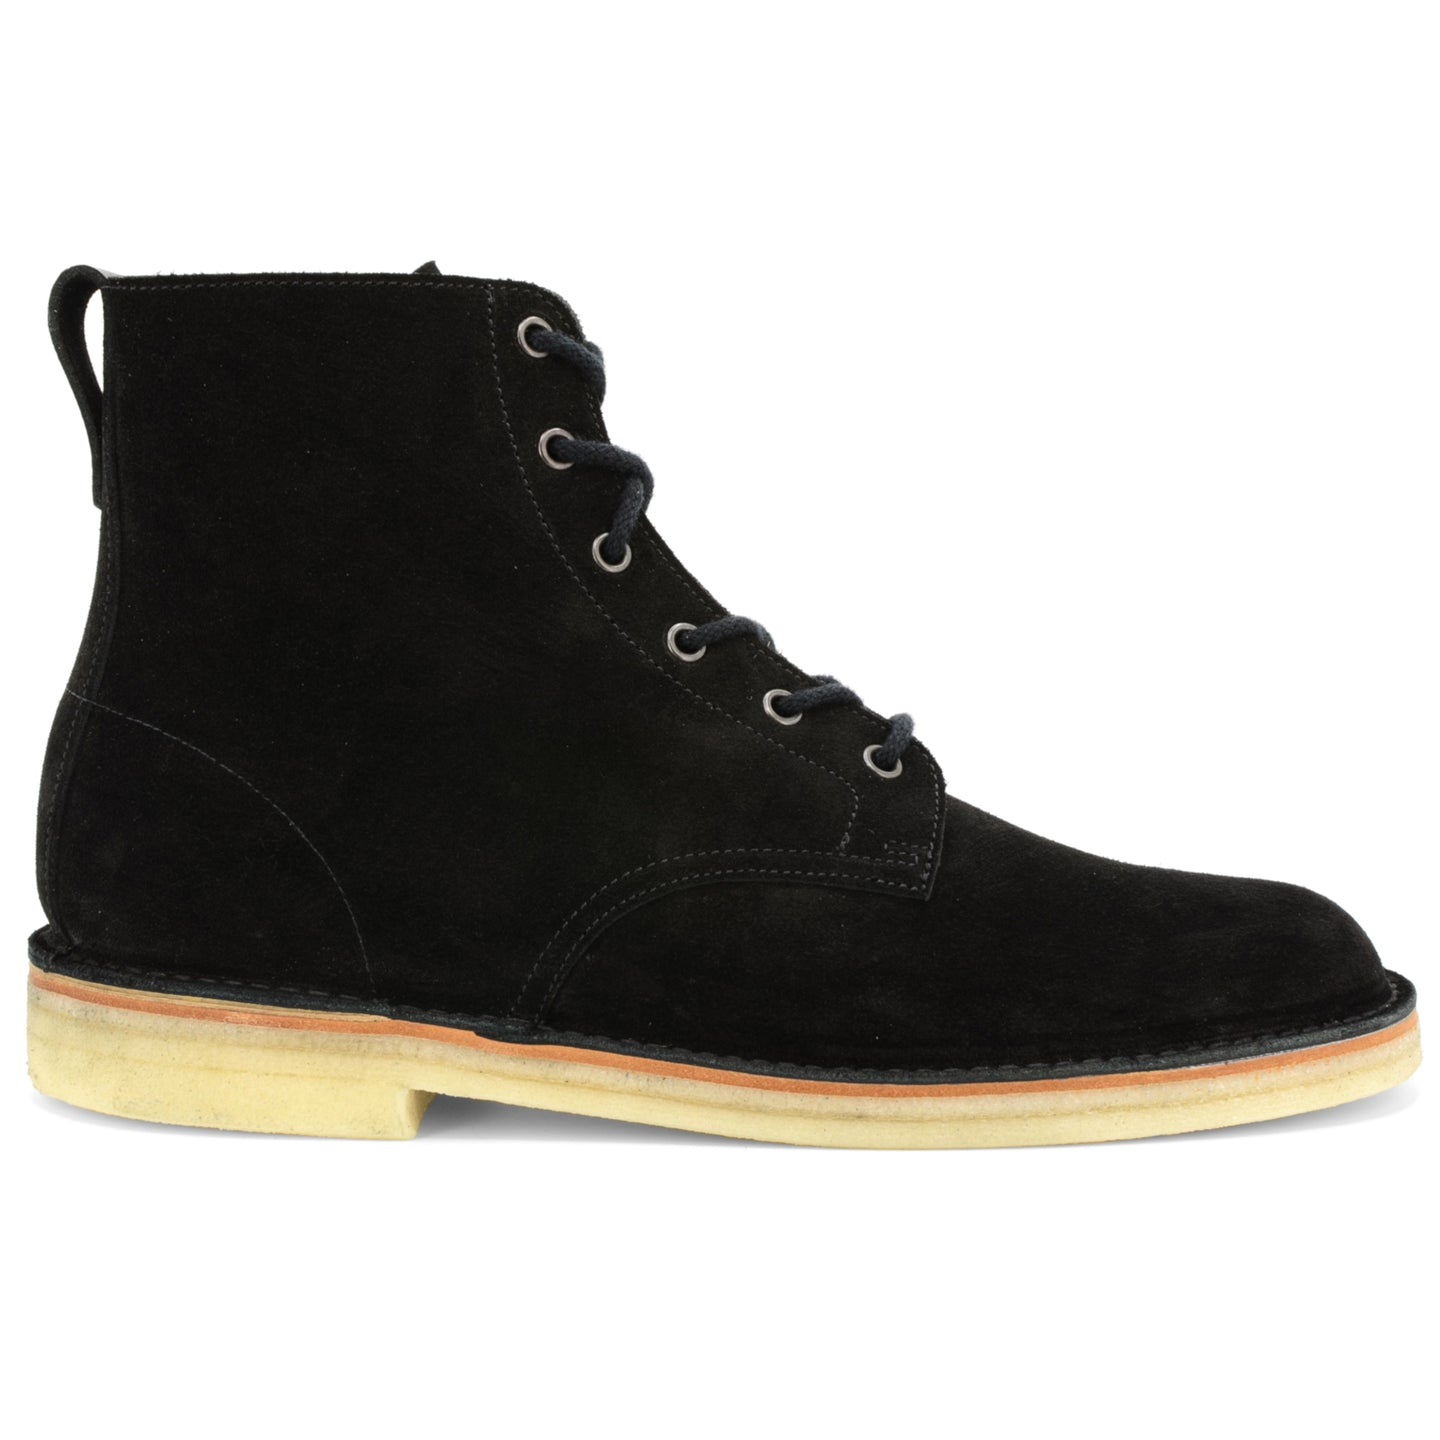 Desert Hi Top Boot Black Suede Made in England